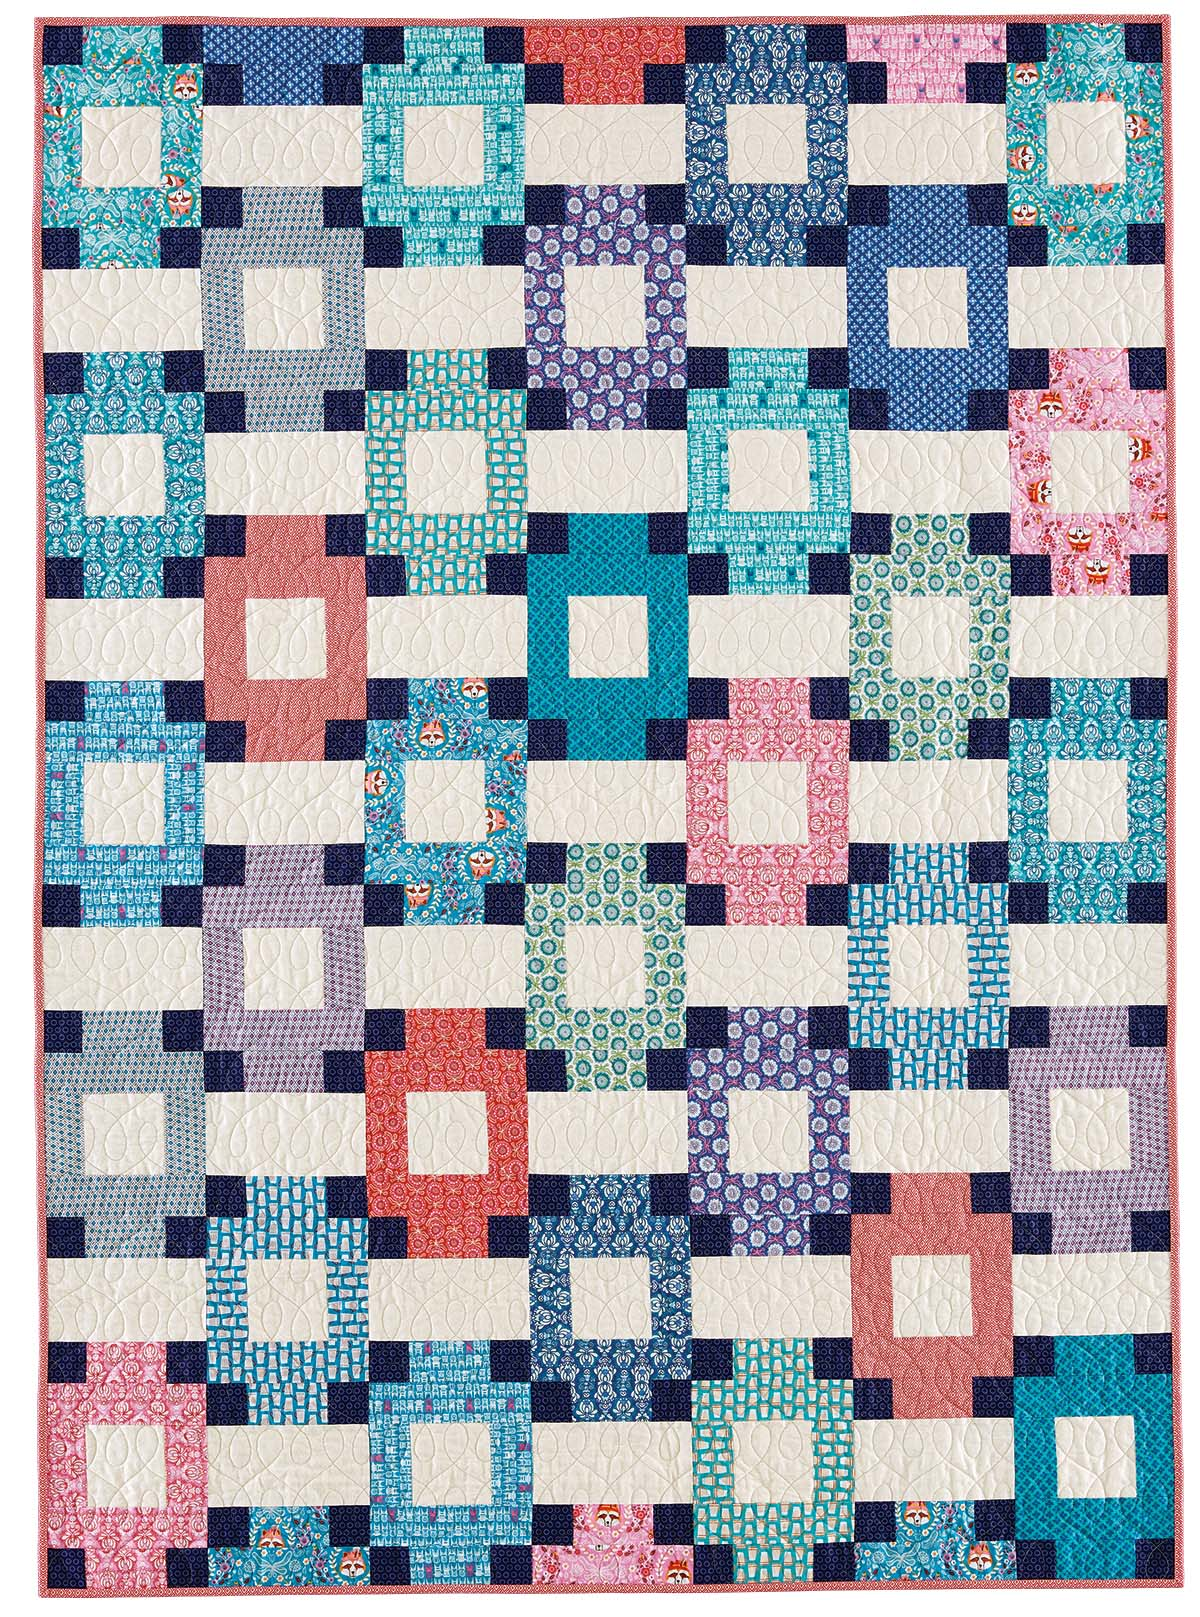 quilting-quickly-september-october-2017-Linky